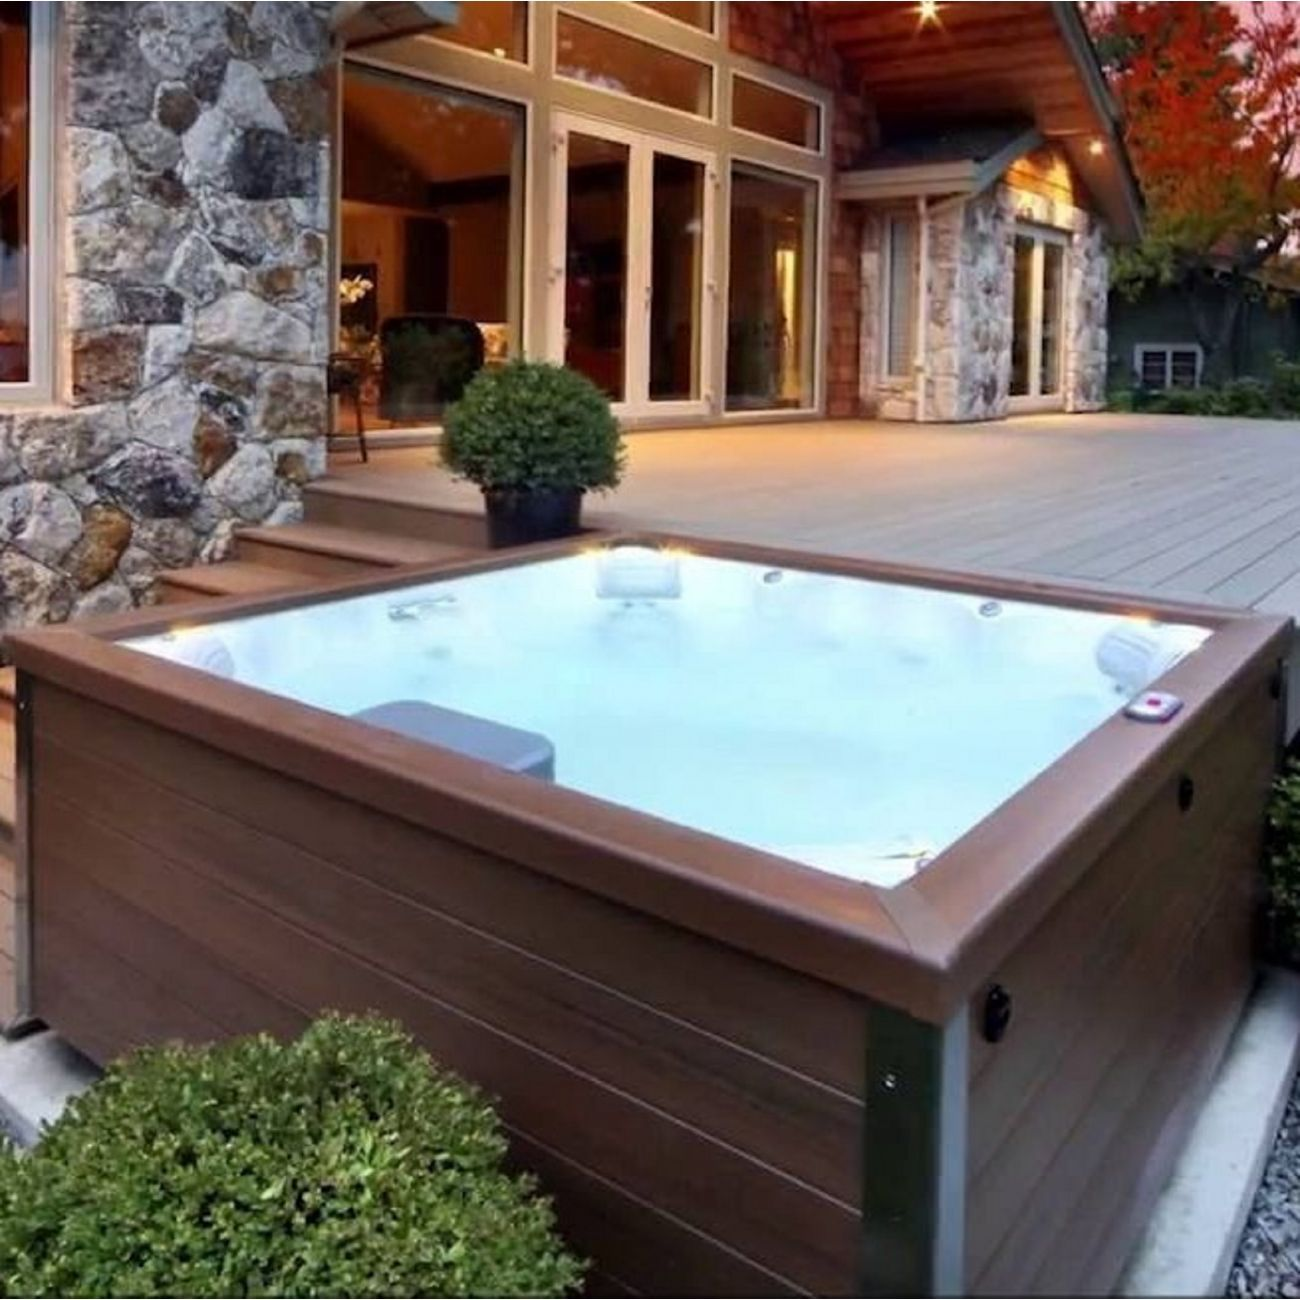 Outdoor Mini Jacuzzi.Jacuzzi J Lxl Mini Pool In 2019 Young House Love Jacuzzi